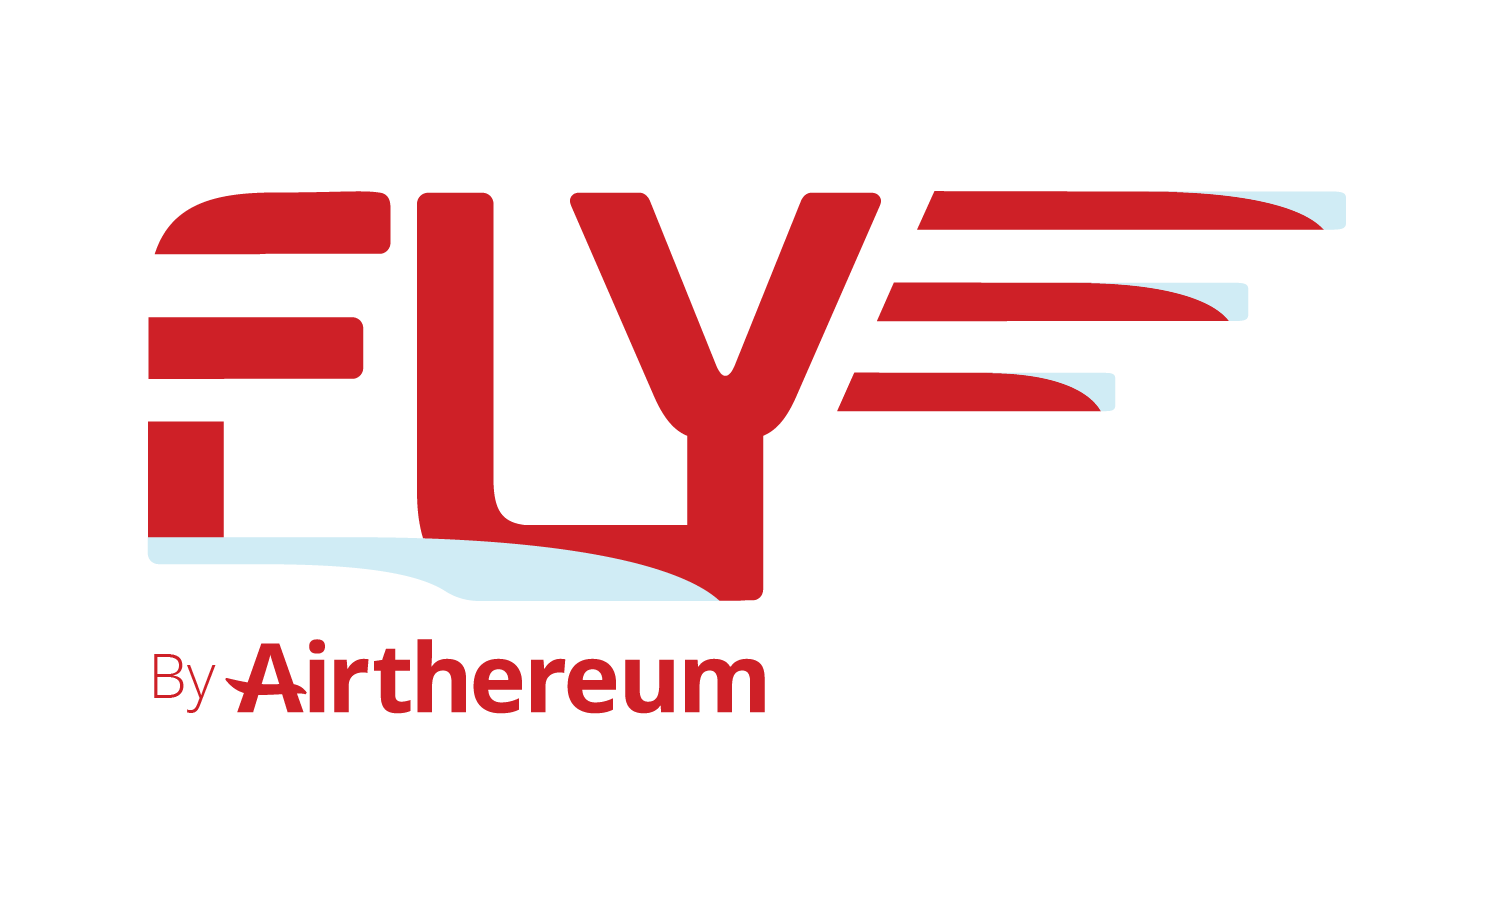 Fly_logo-01.png